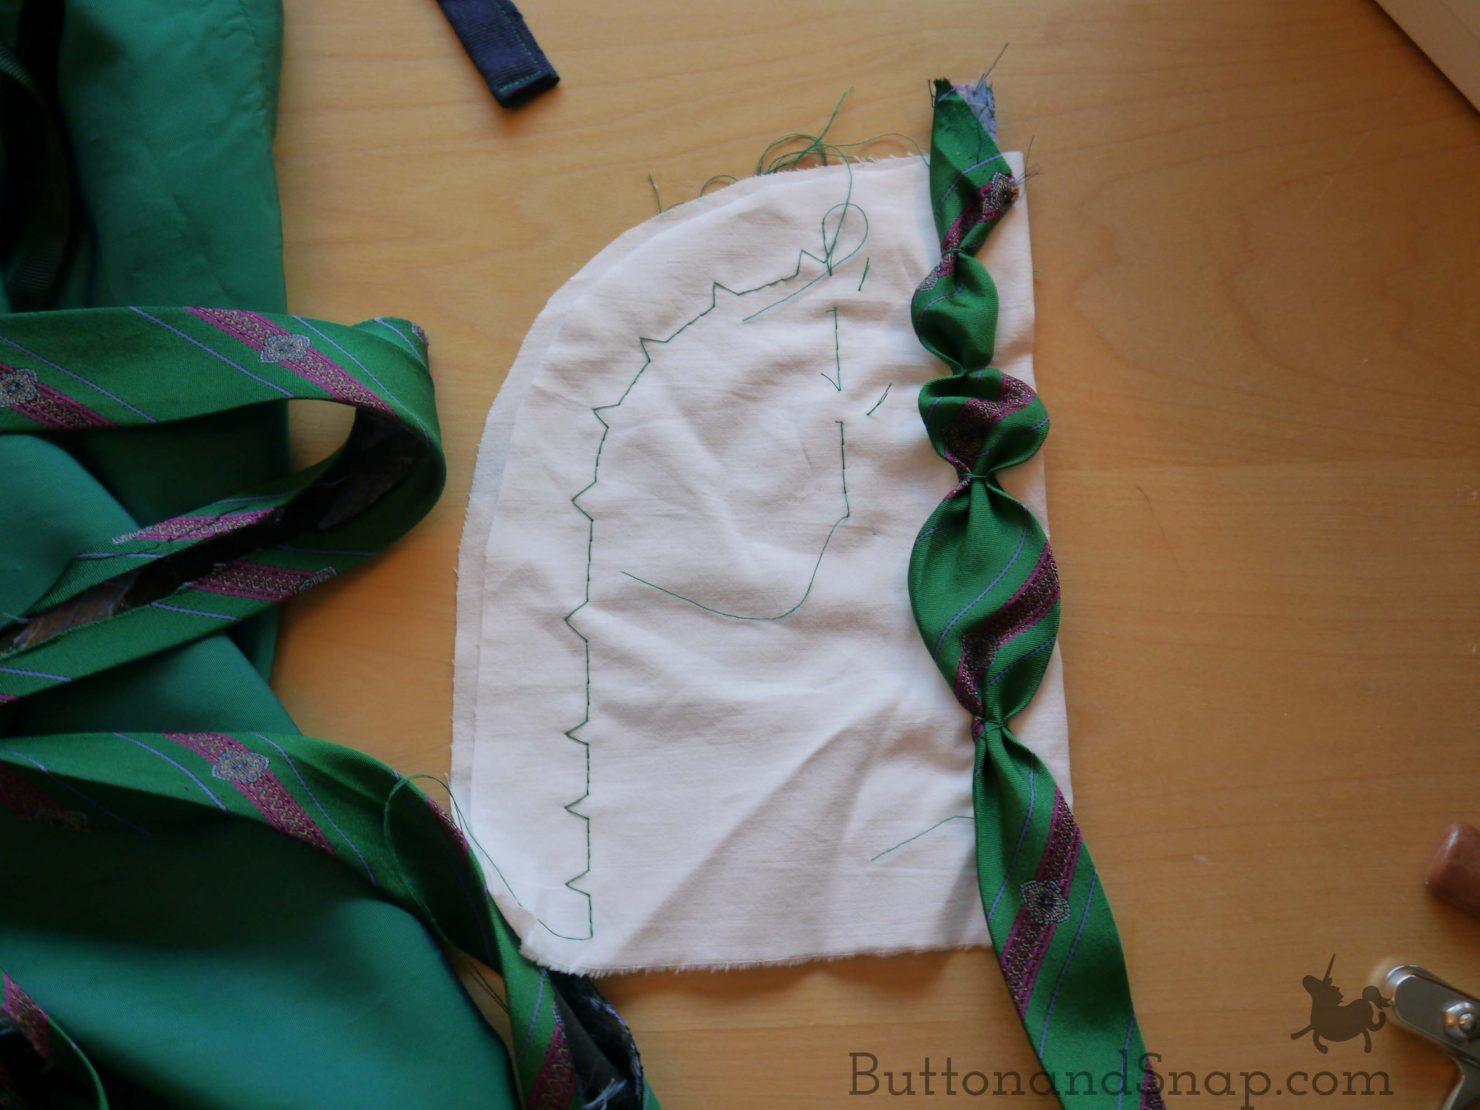 Attaching bias tape puffs